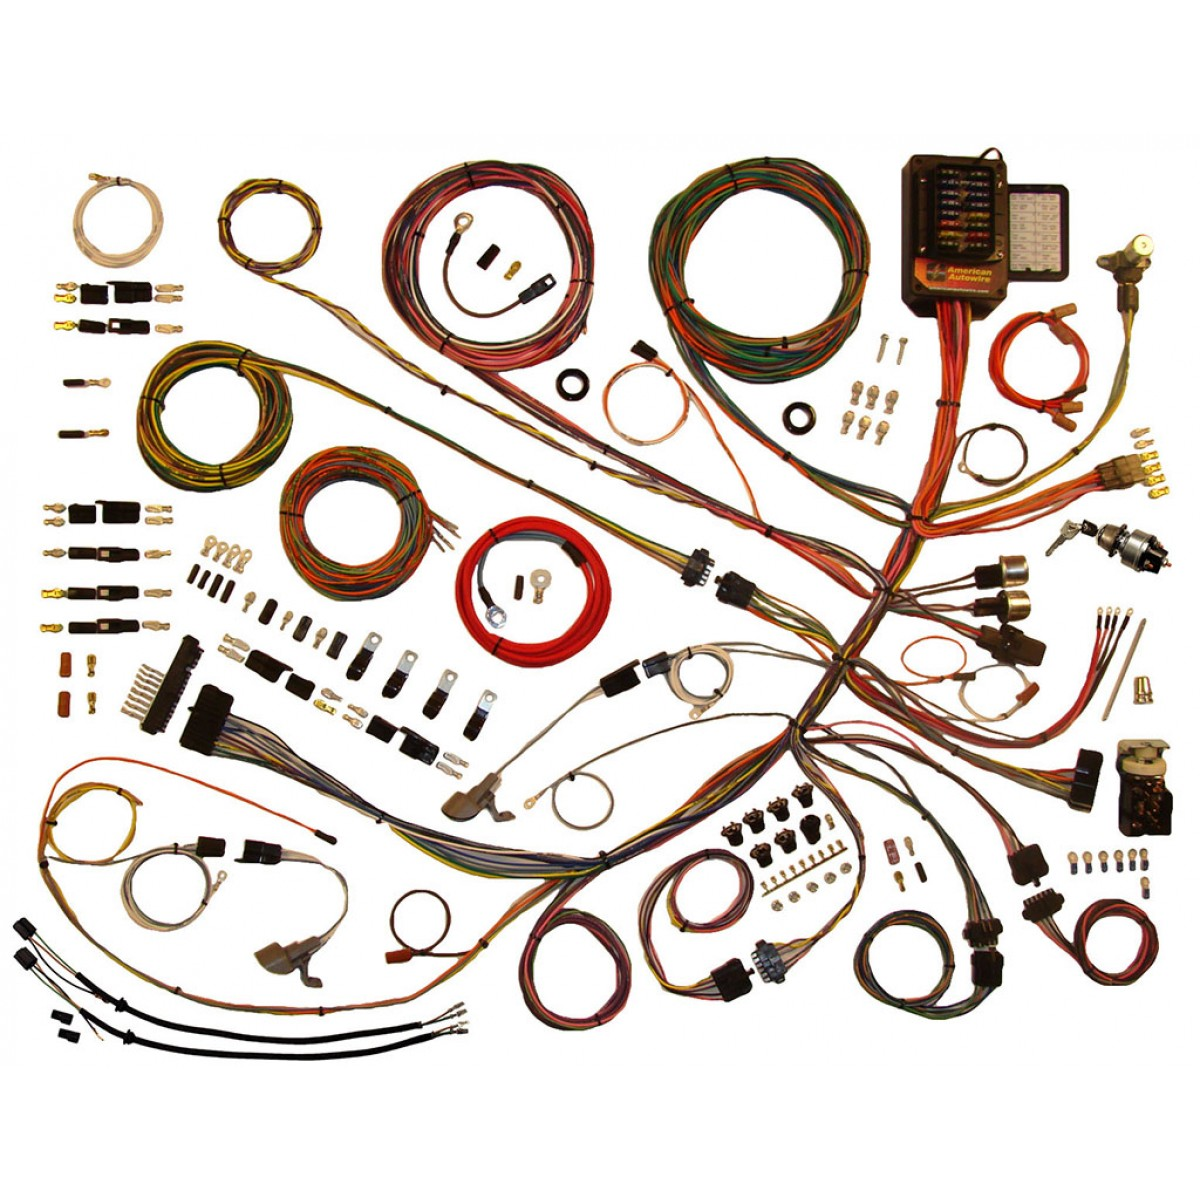 1953 1956 Ford F100 Wiring Harness Complete Kit